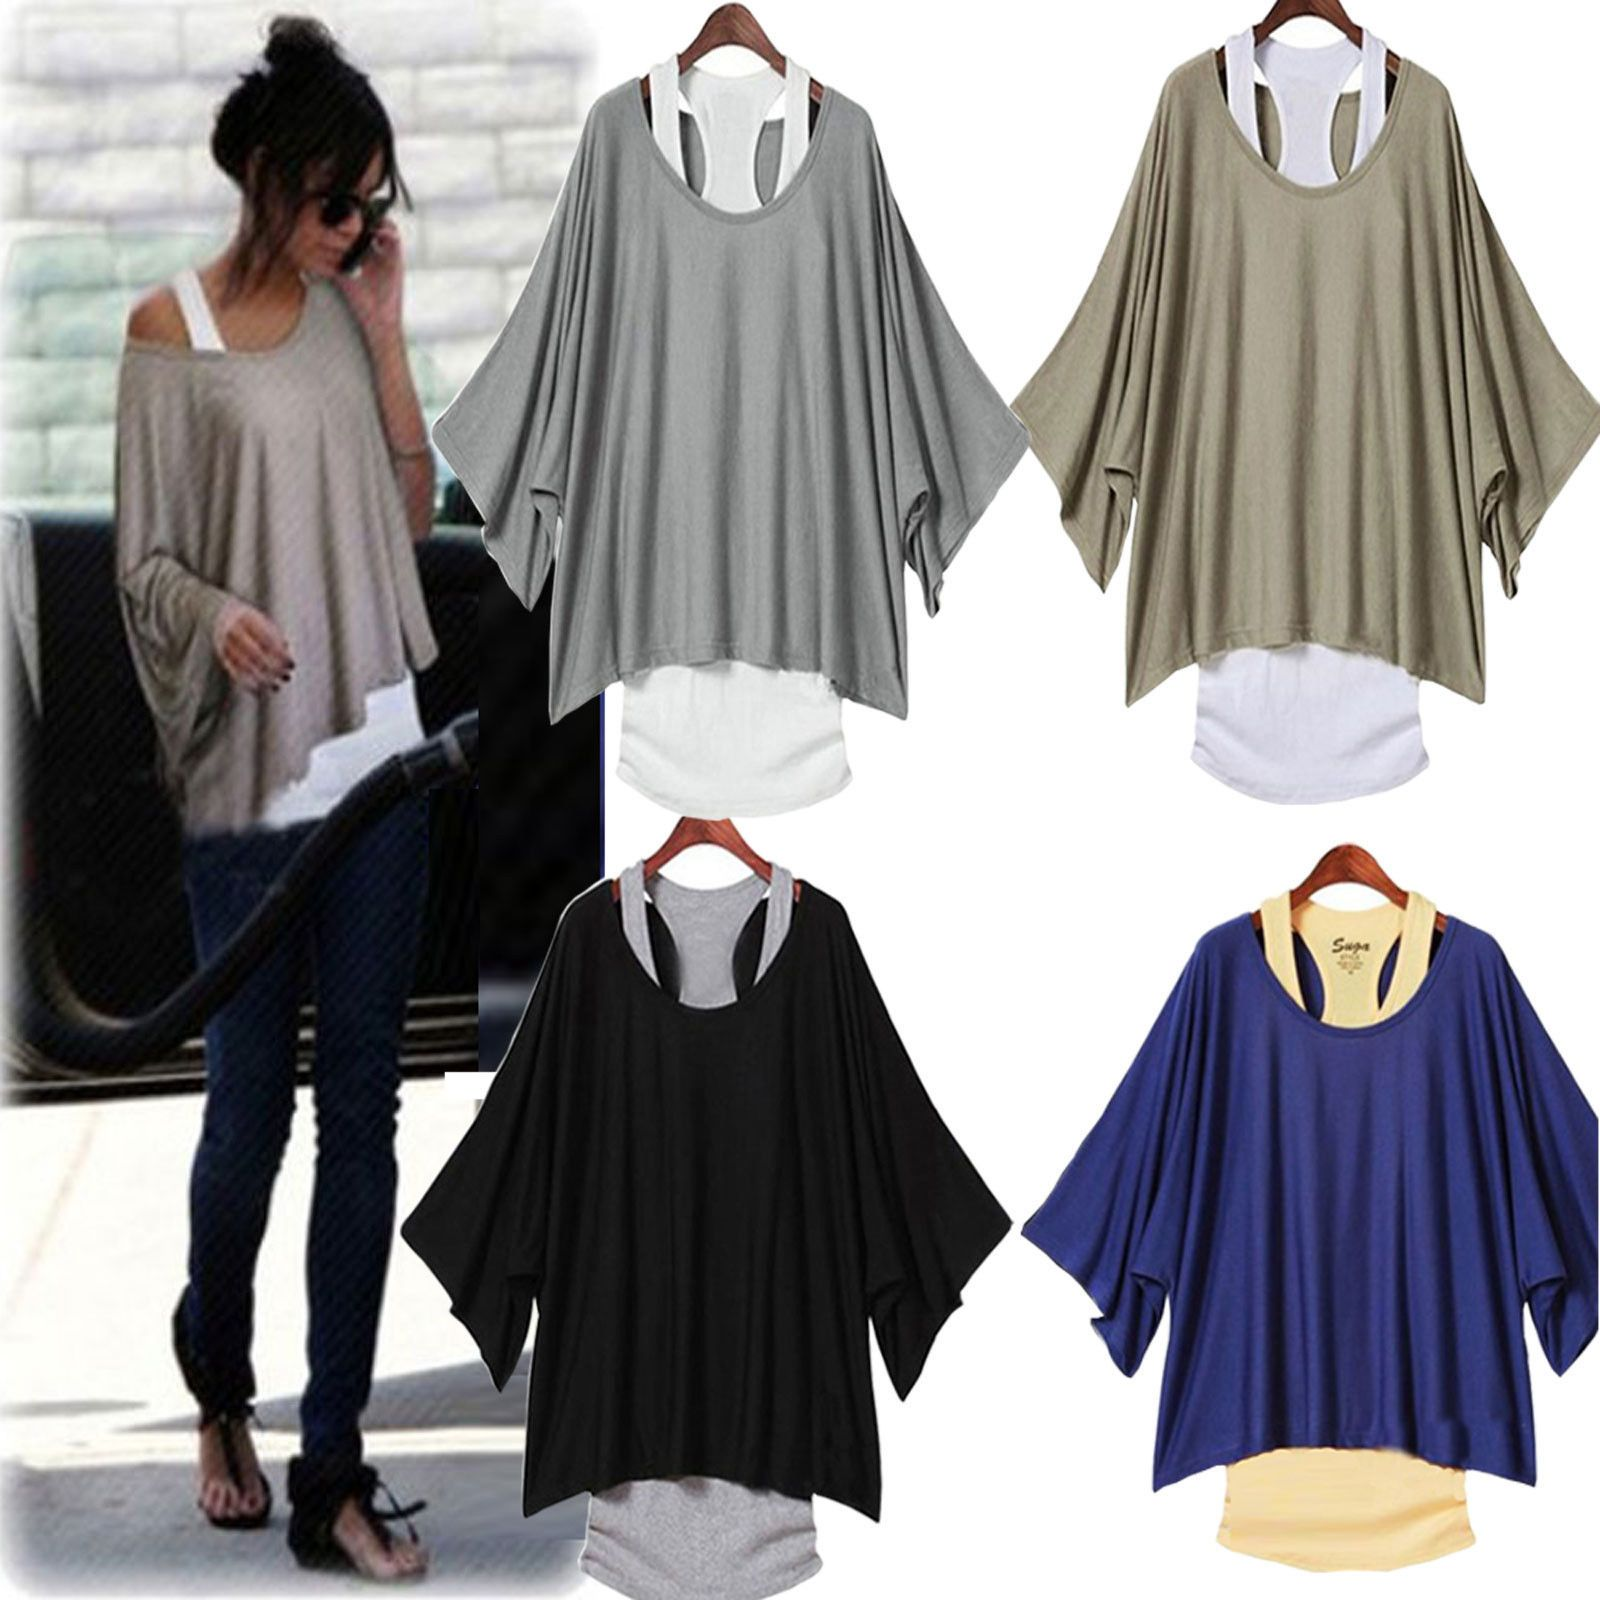 Design your own t shirt ebay - Hot Fashion Sexy Womens Casual Loose Tops Batwing Blouse T Shirt Tank Vest 2pcs Ebay